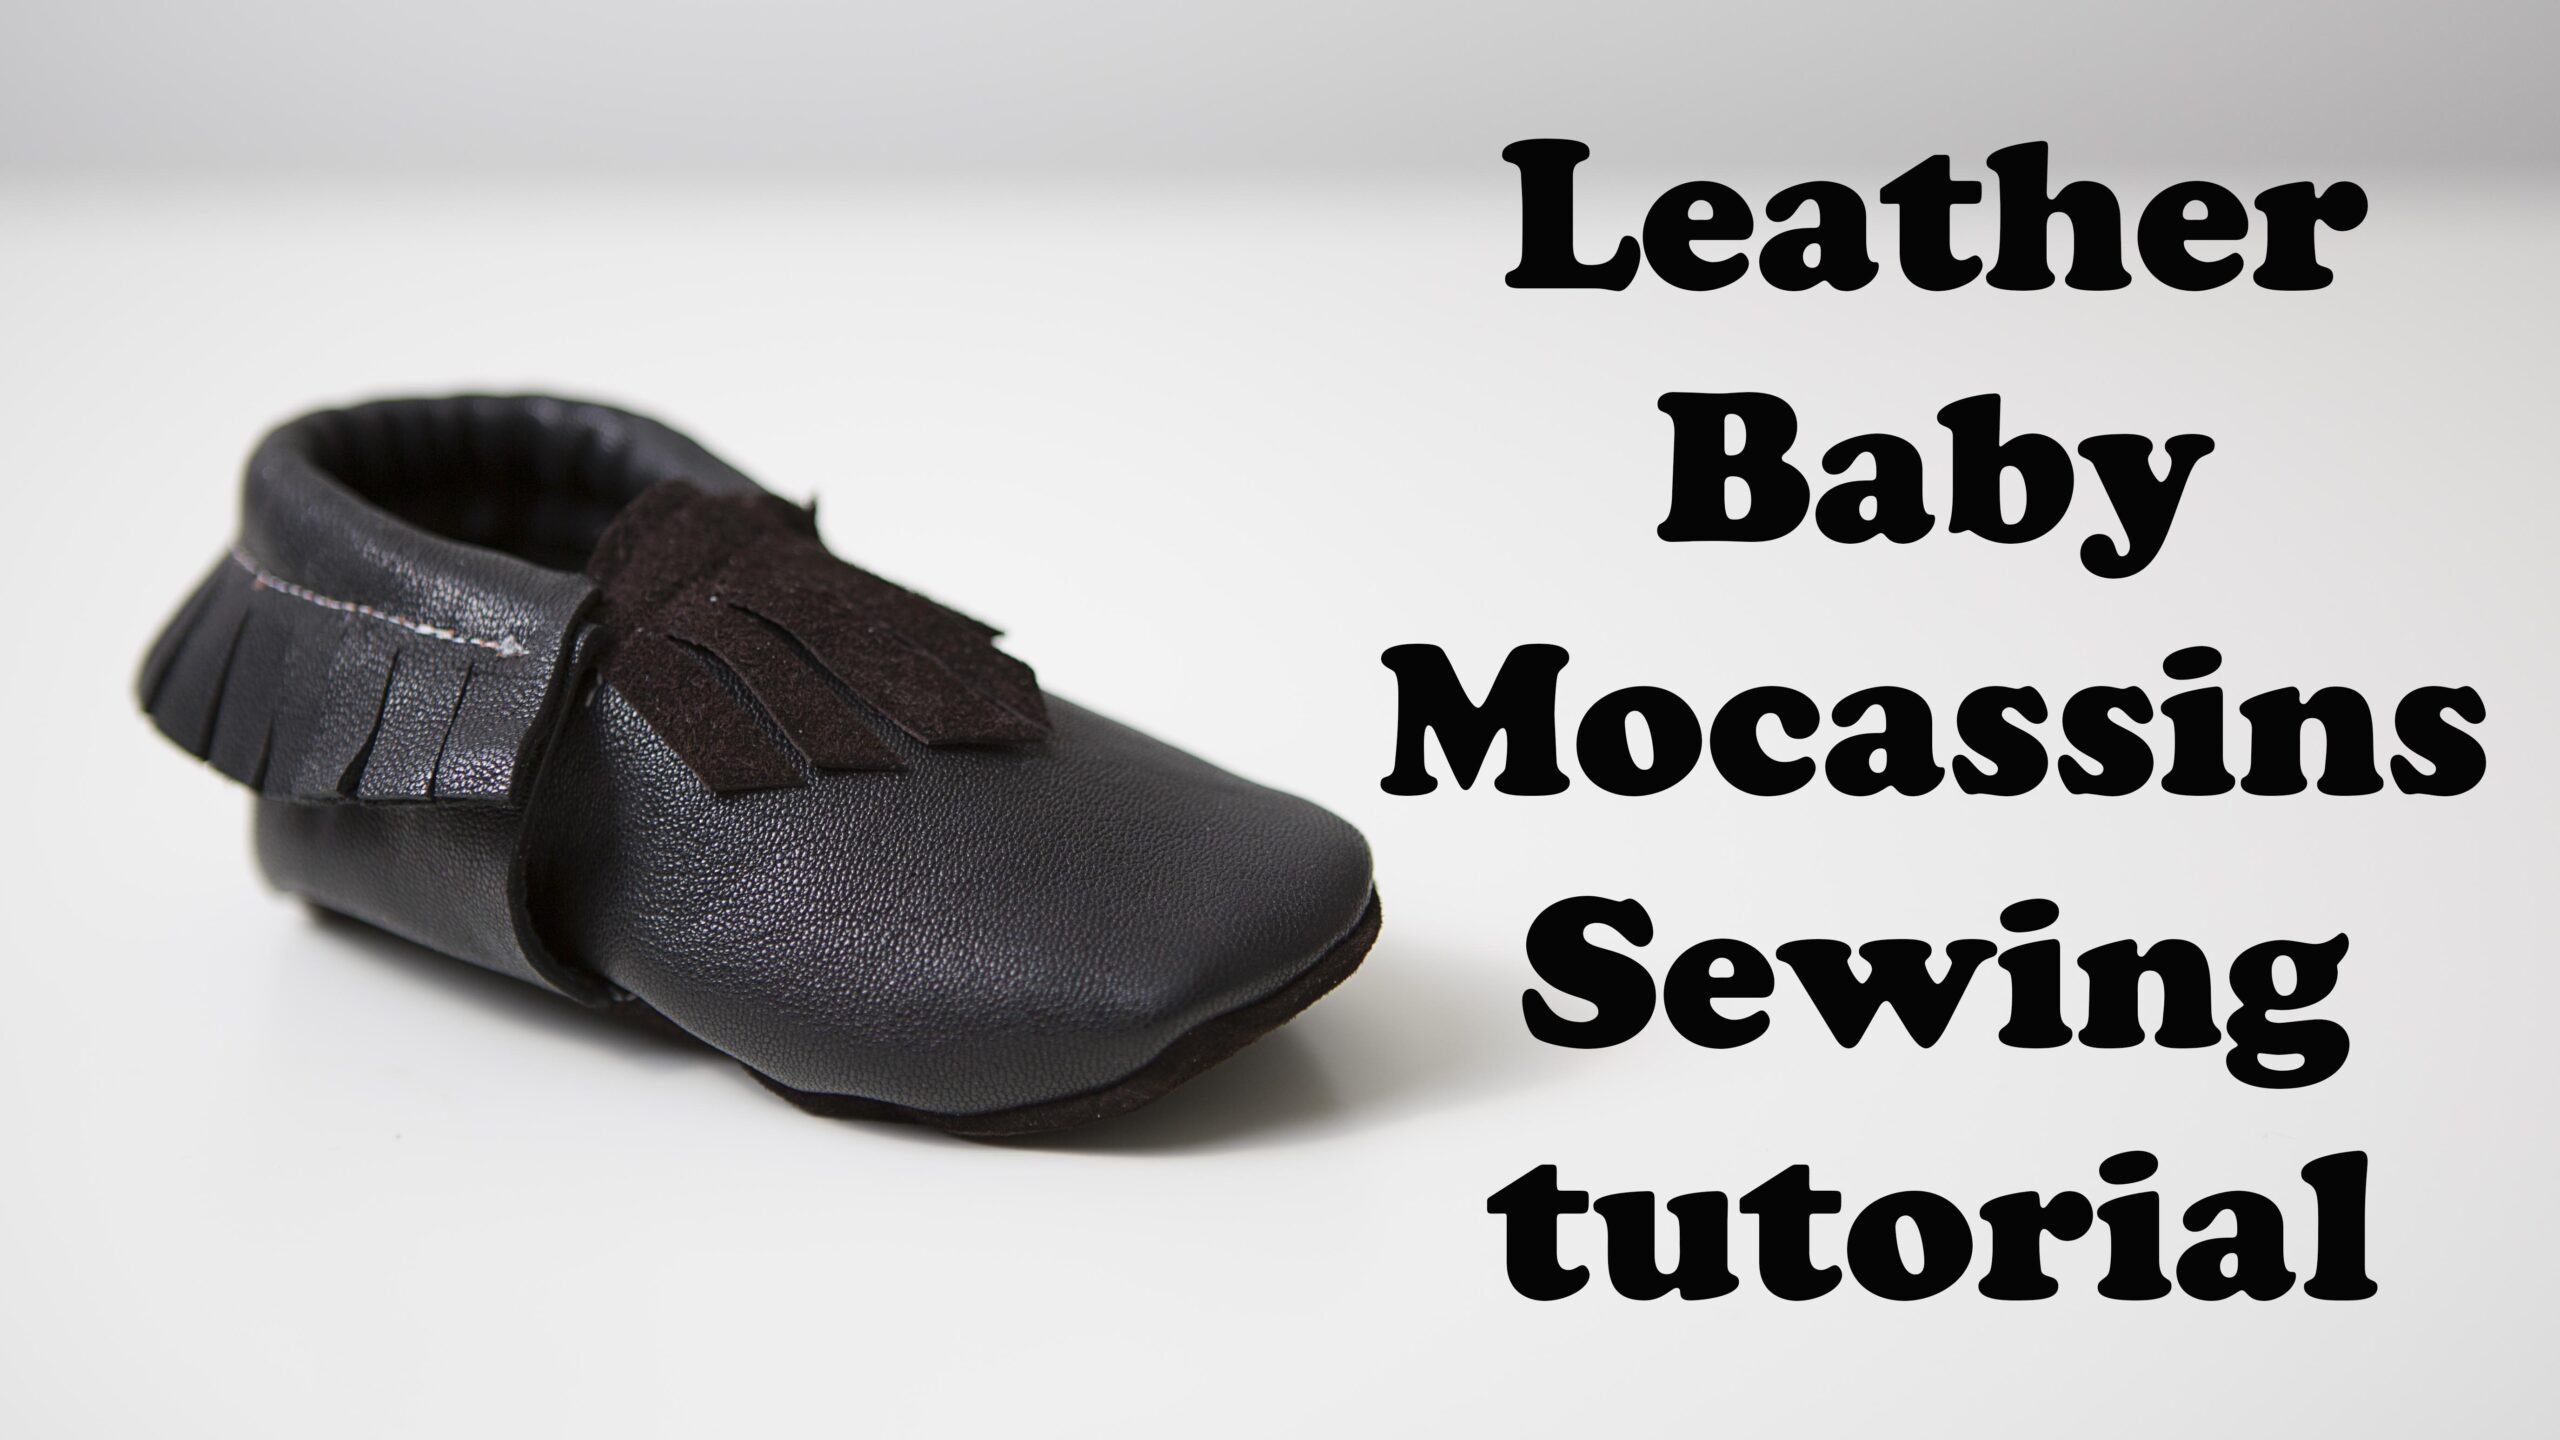 Leather Baby Mocassins sewing tutorial